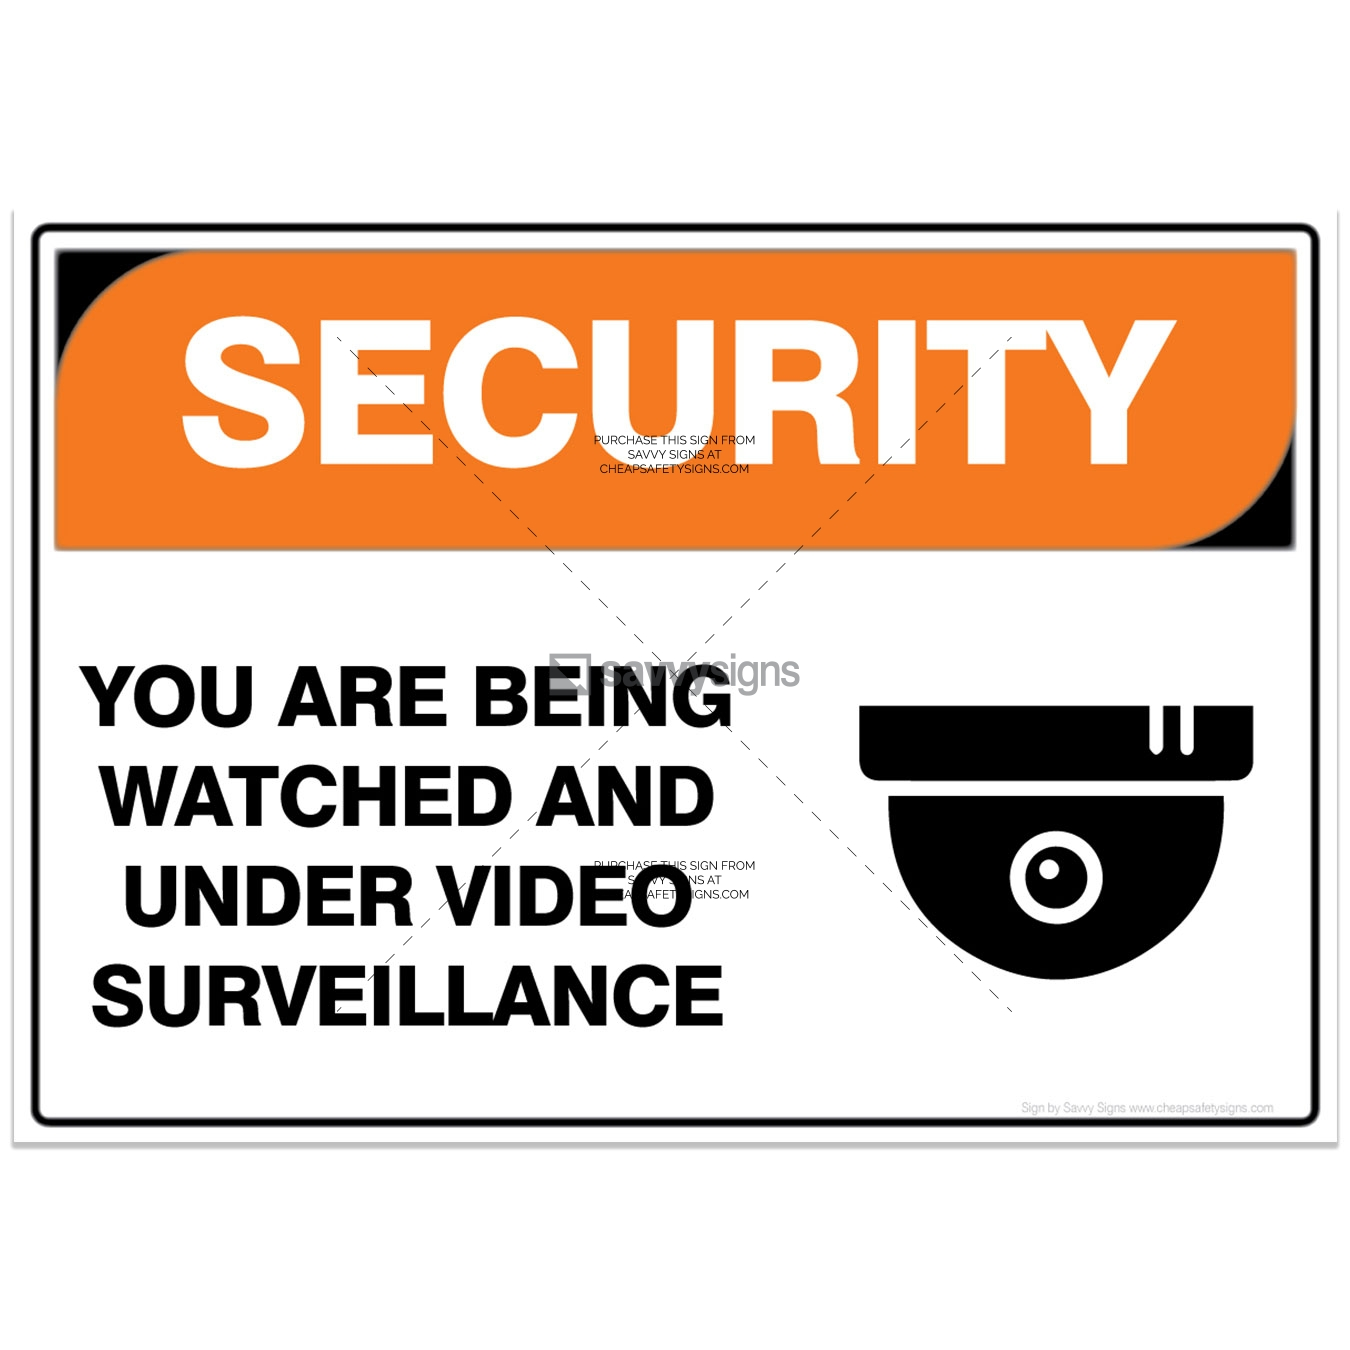 SSSEC3028-SECURITY-Workplace-Safety-Signs_Savvy-Signs_v3